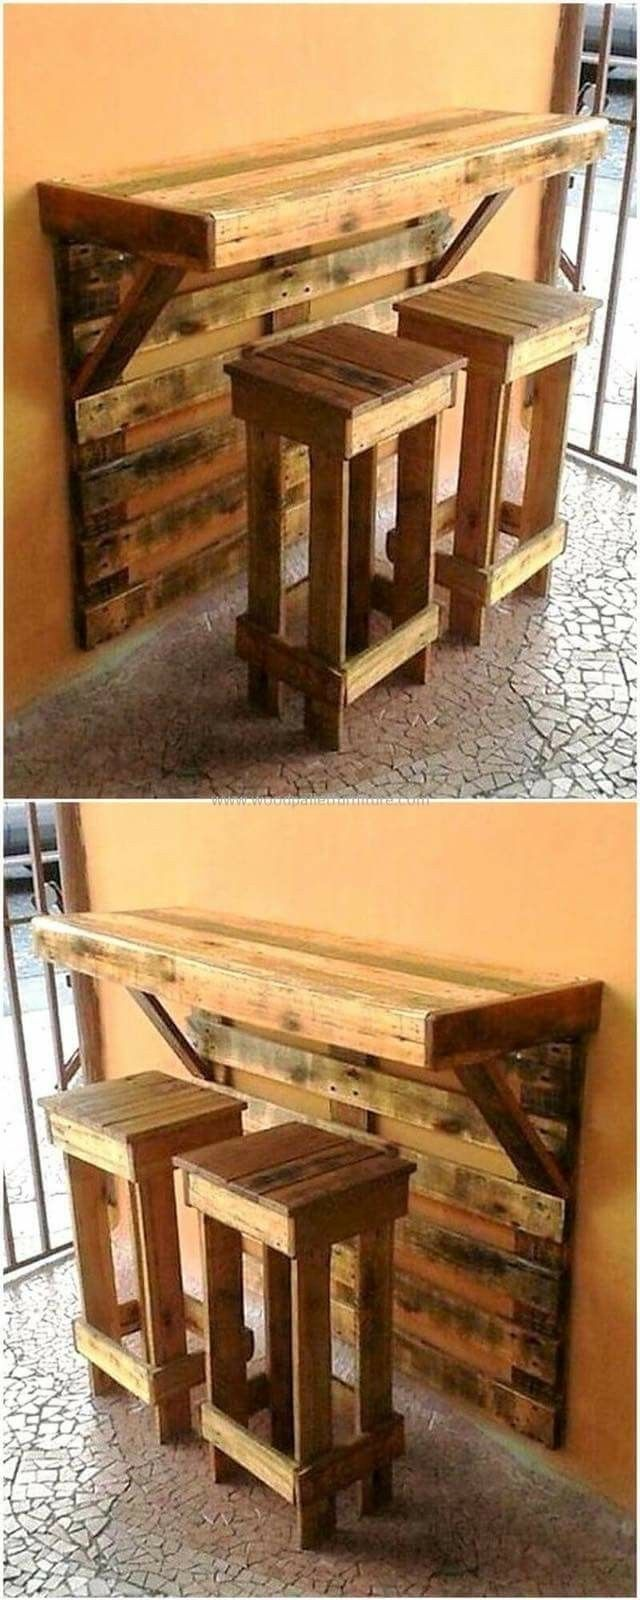 Look at this pallet project. A wall mounted bar and stools. All DIY ...